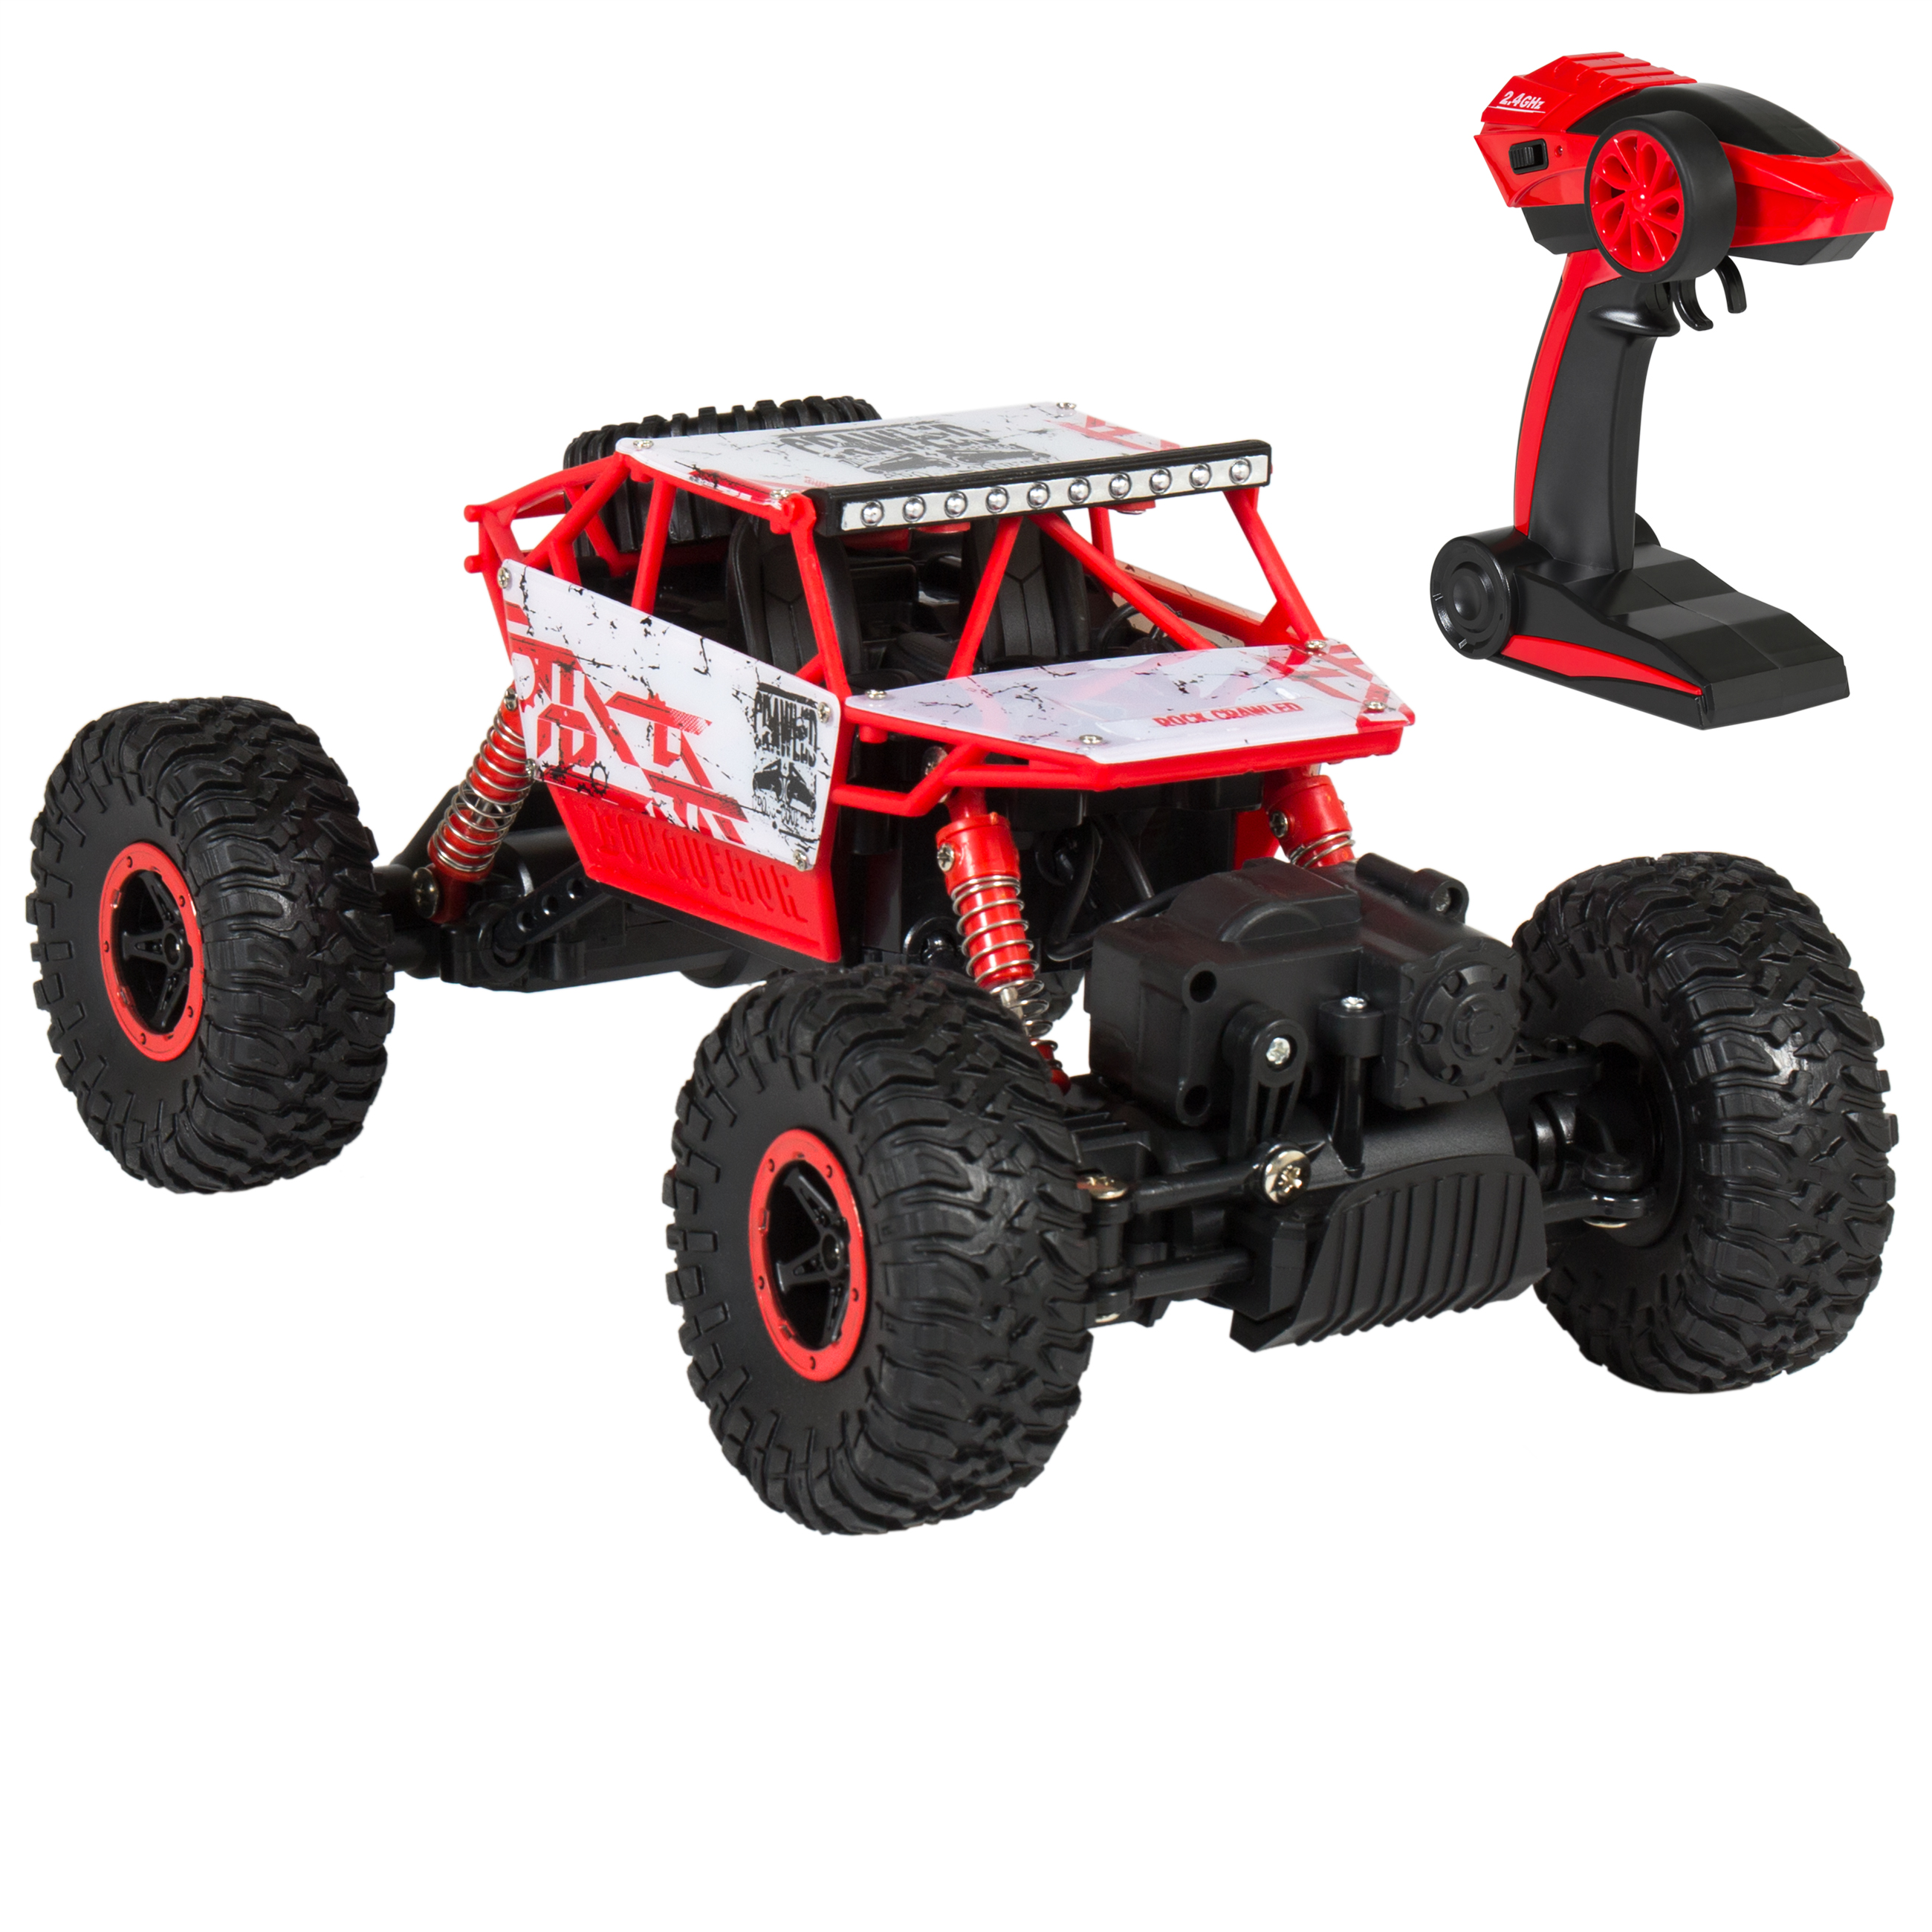 Best Choice Products 2.4Ghz 4WD RC Rock Crawler Monster Truck Toy Car w/ Charger, Rechargeable Batteries - Red/Black